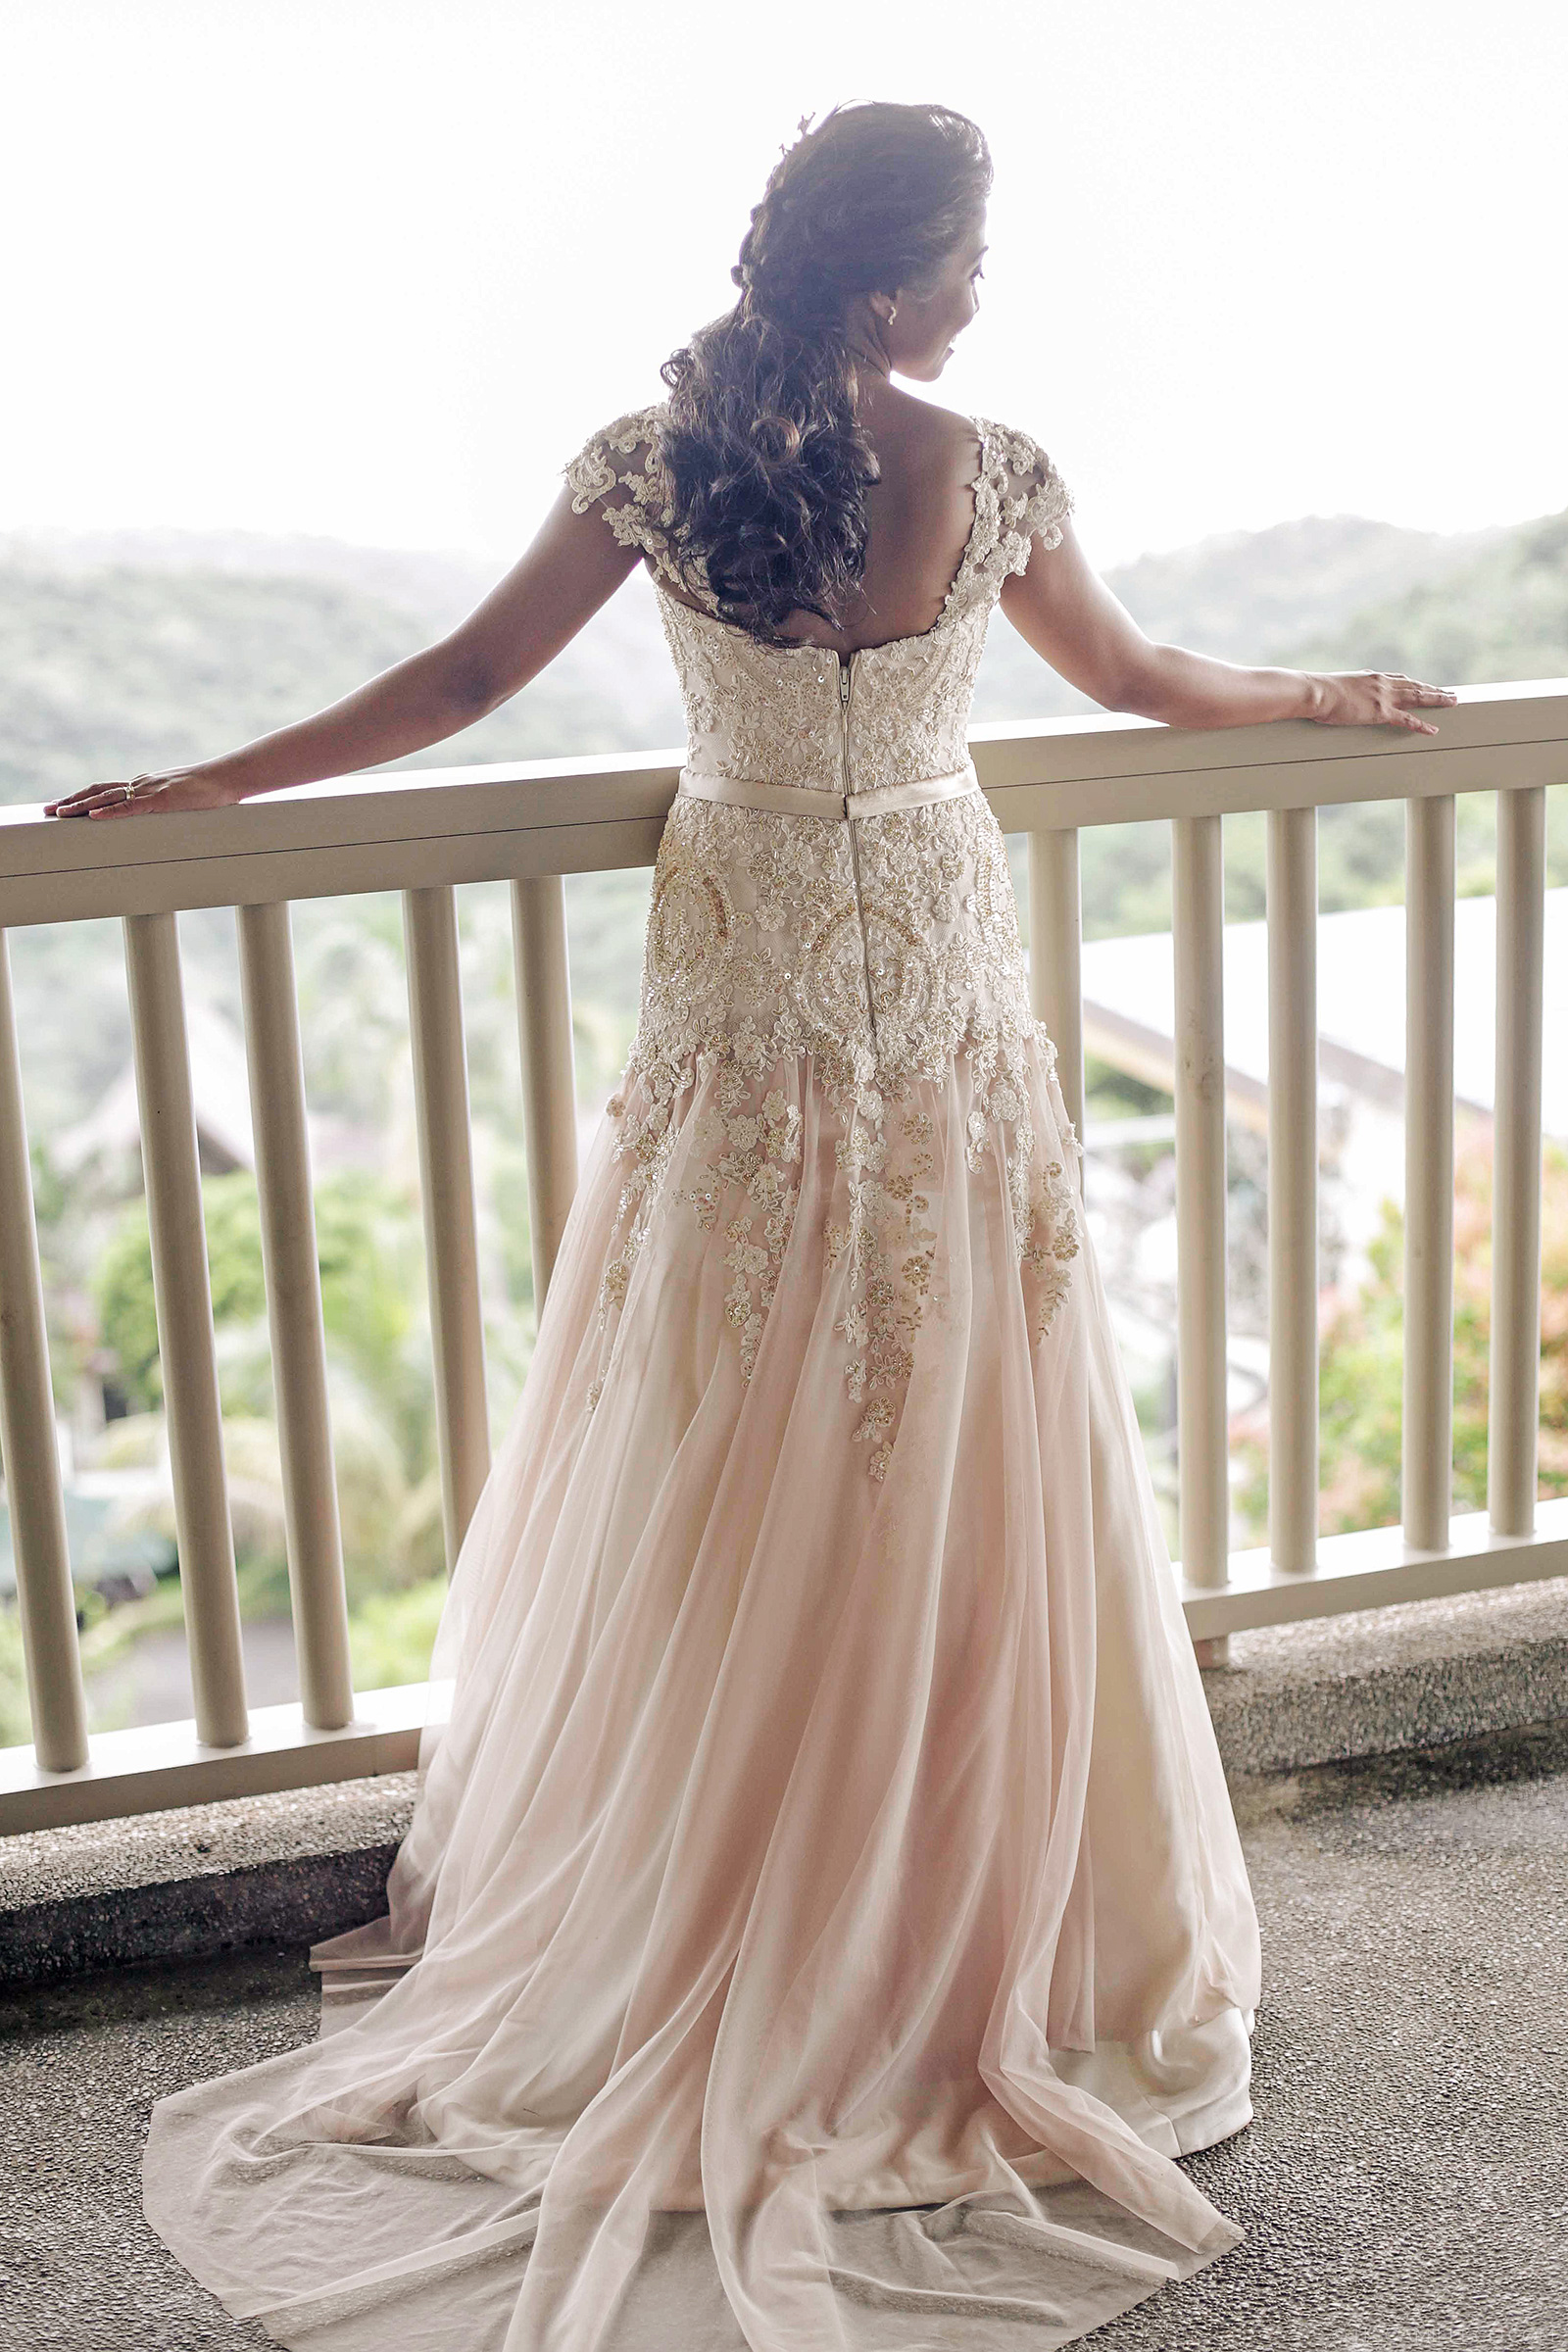 Lace Bridal Gown And Entourage By Camille Co   Camille Tries to Blog